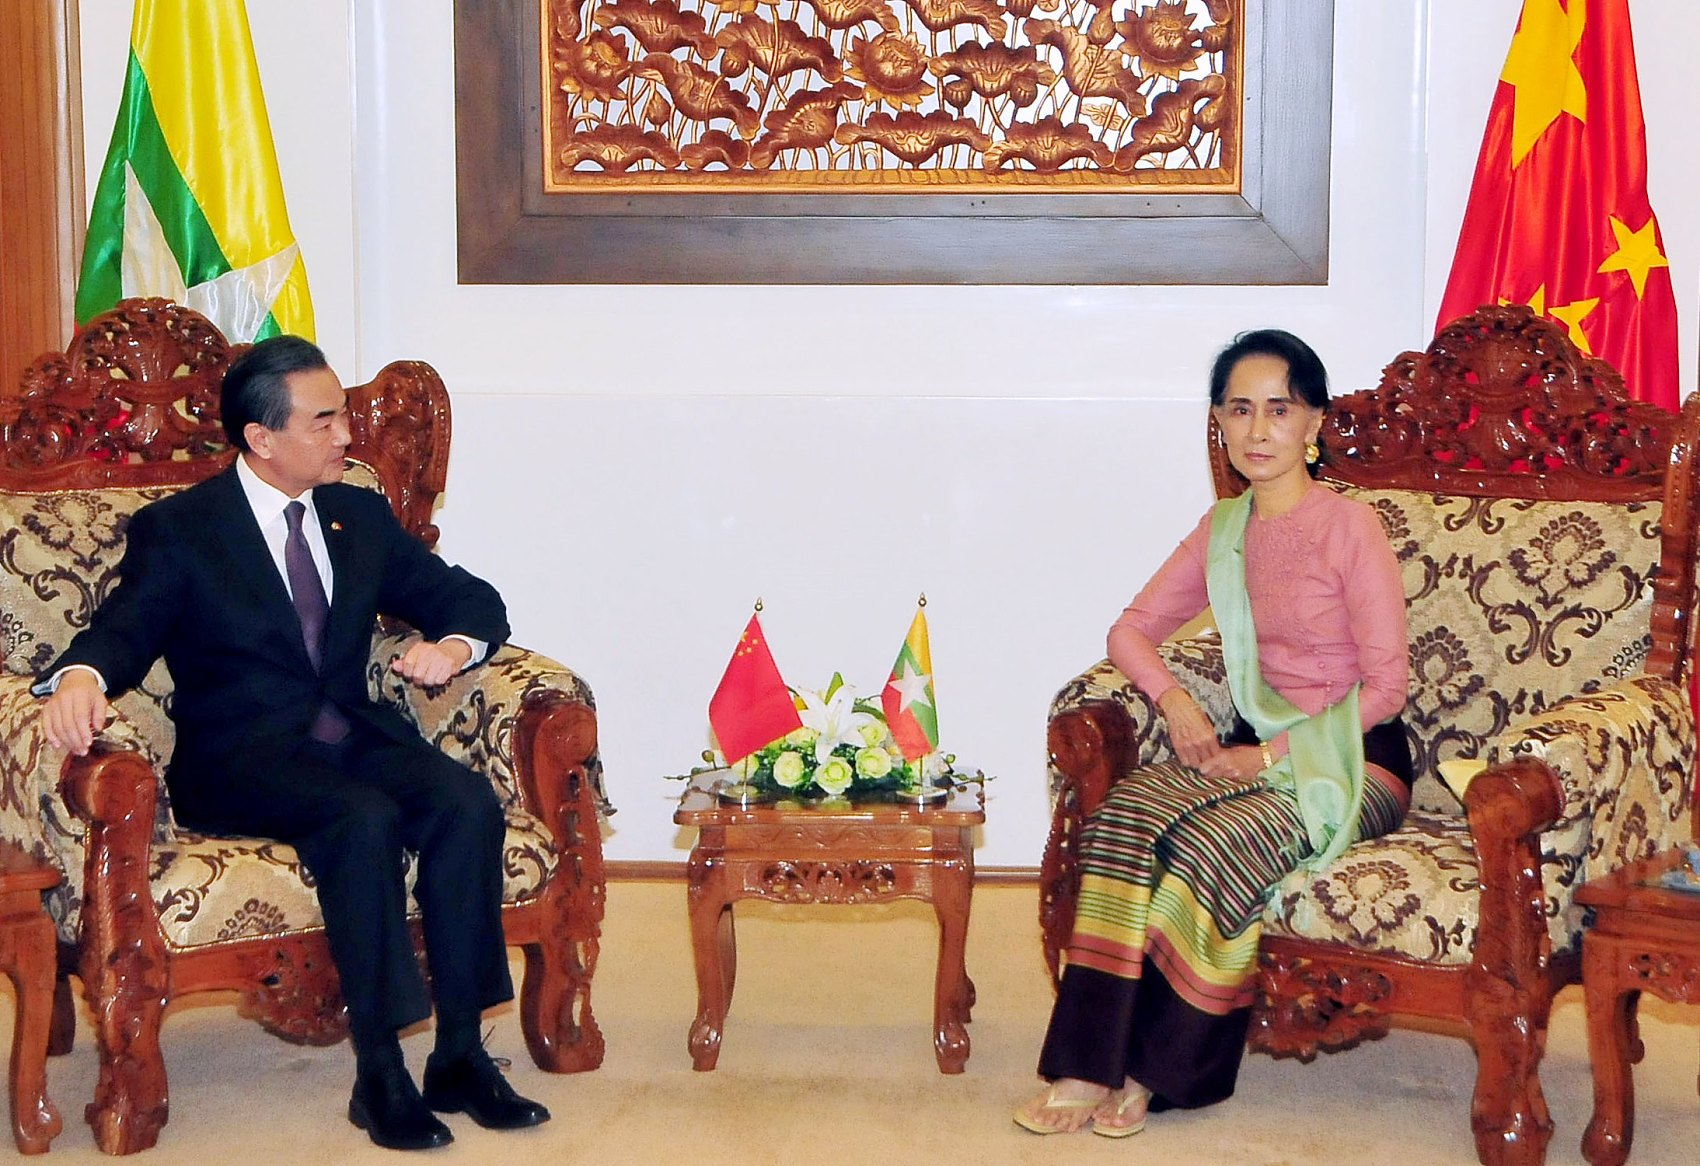 China-Myanmar economic corridor could stabilize region